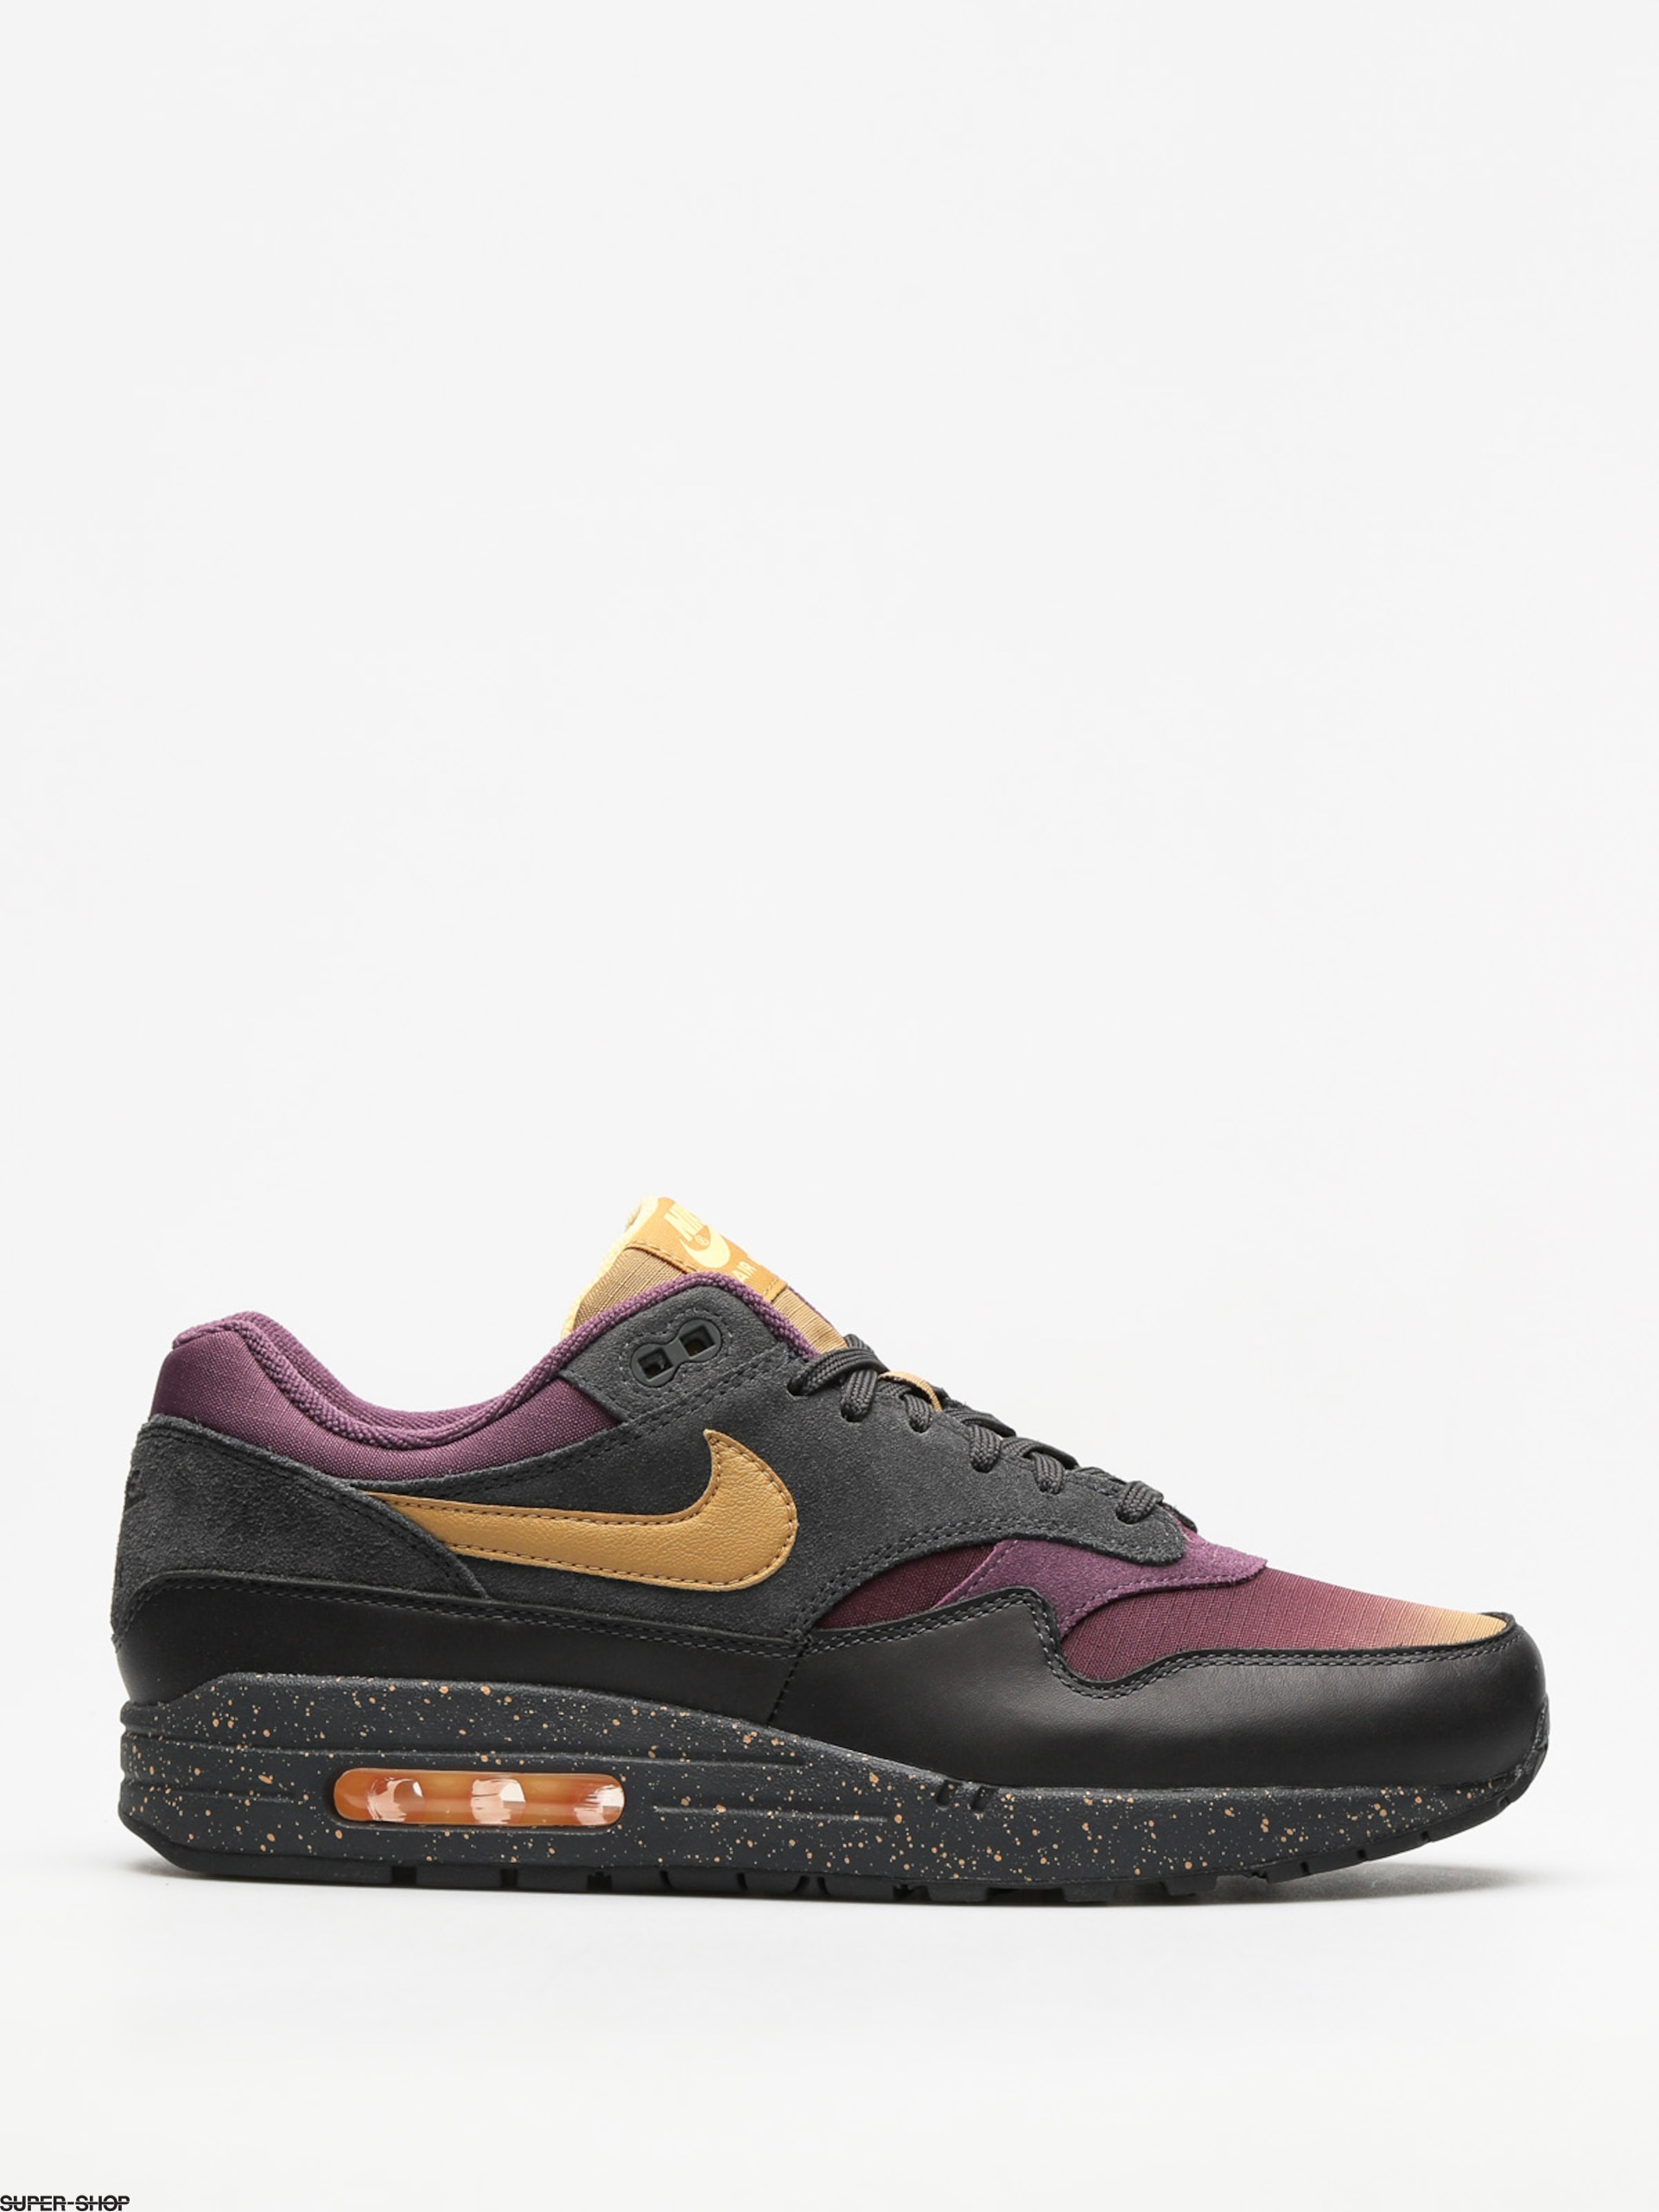 Nike Shoes Air Max 1 Premium (anthracite/elemental gold pro purple)